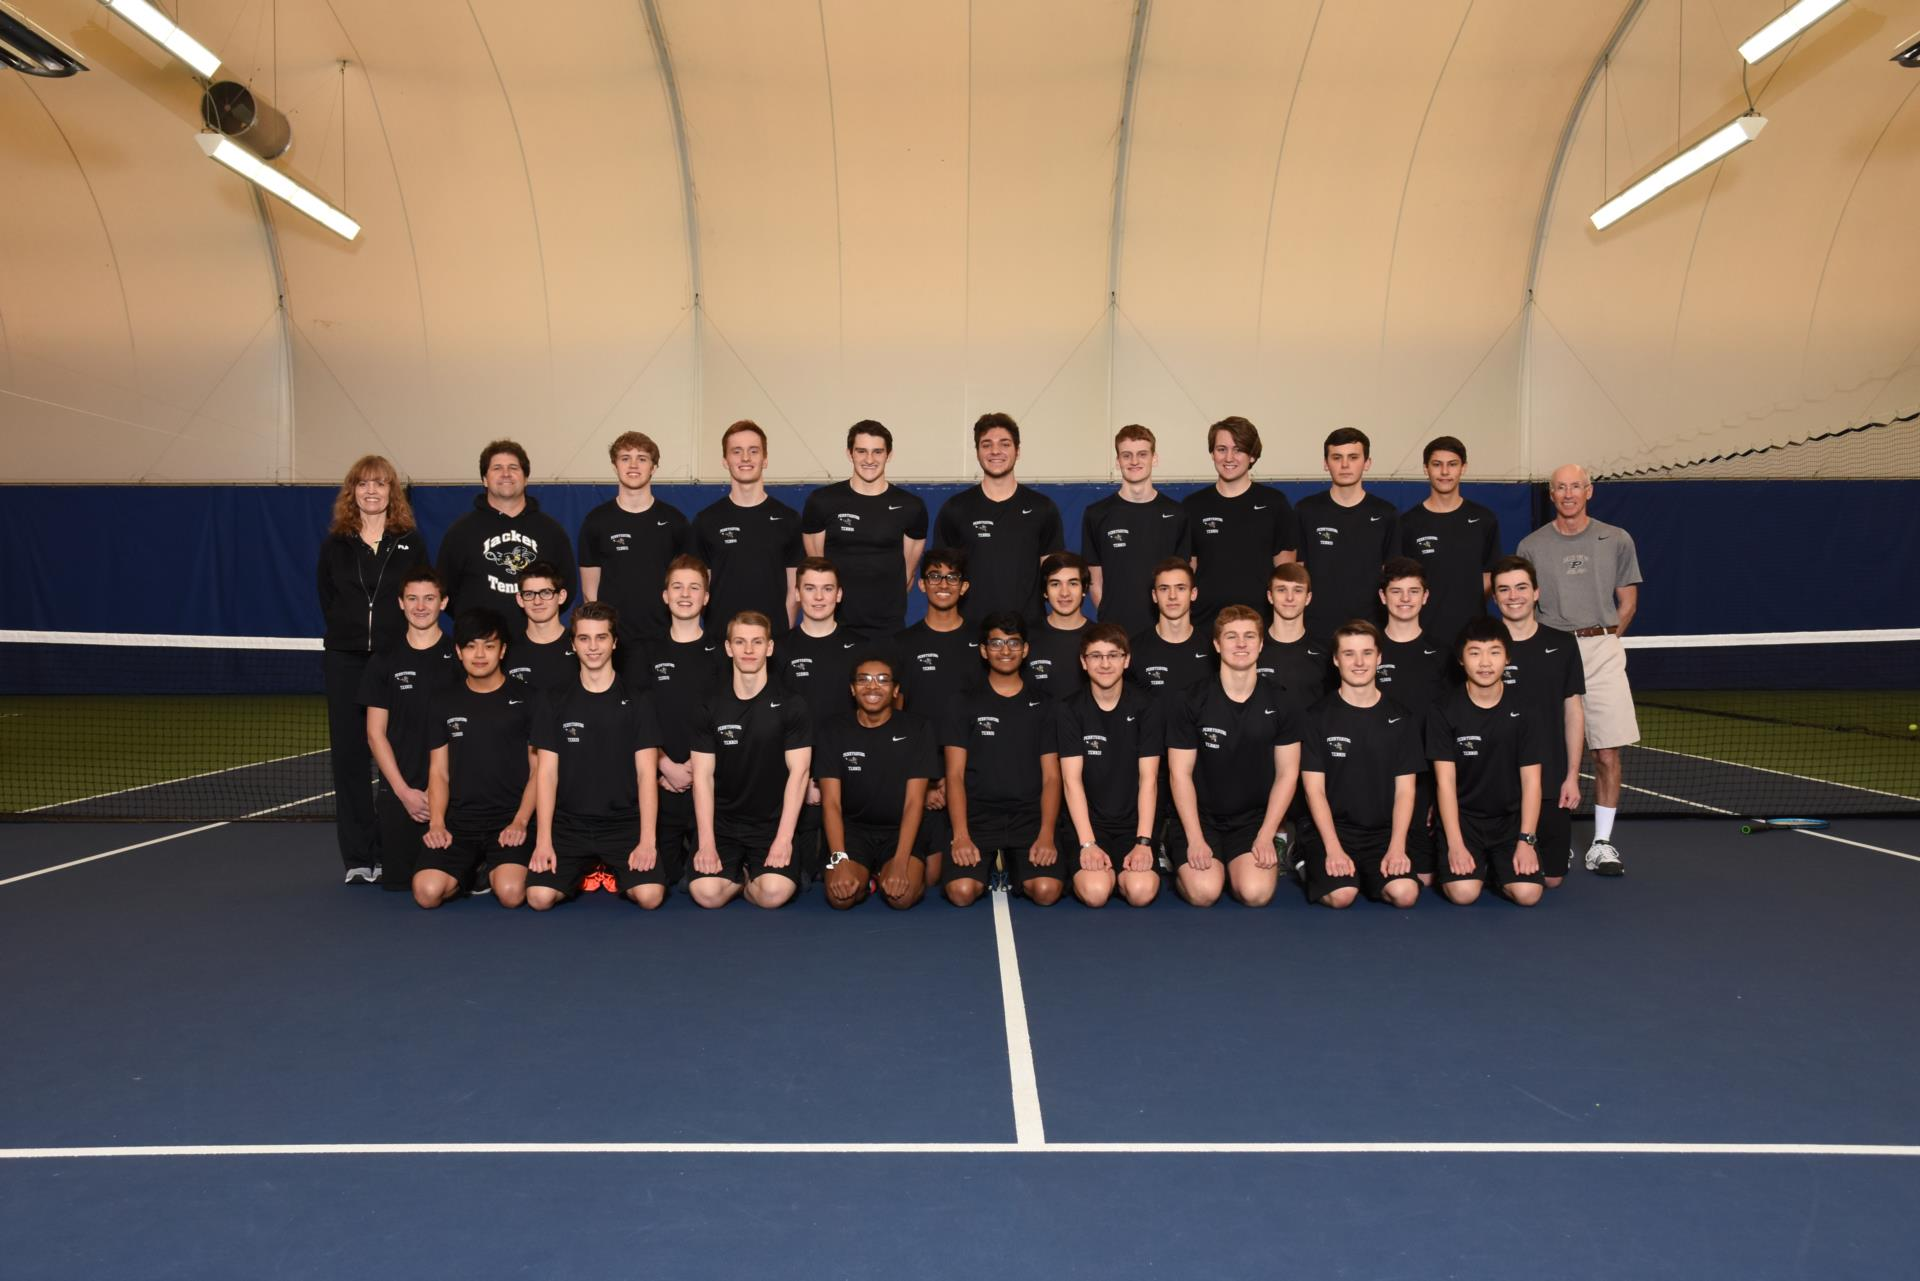 PHS Boys Tennis Team Photo